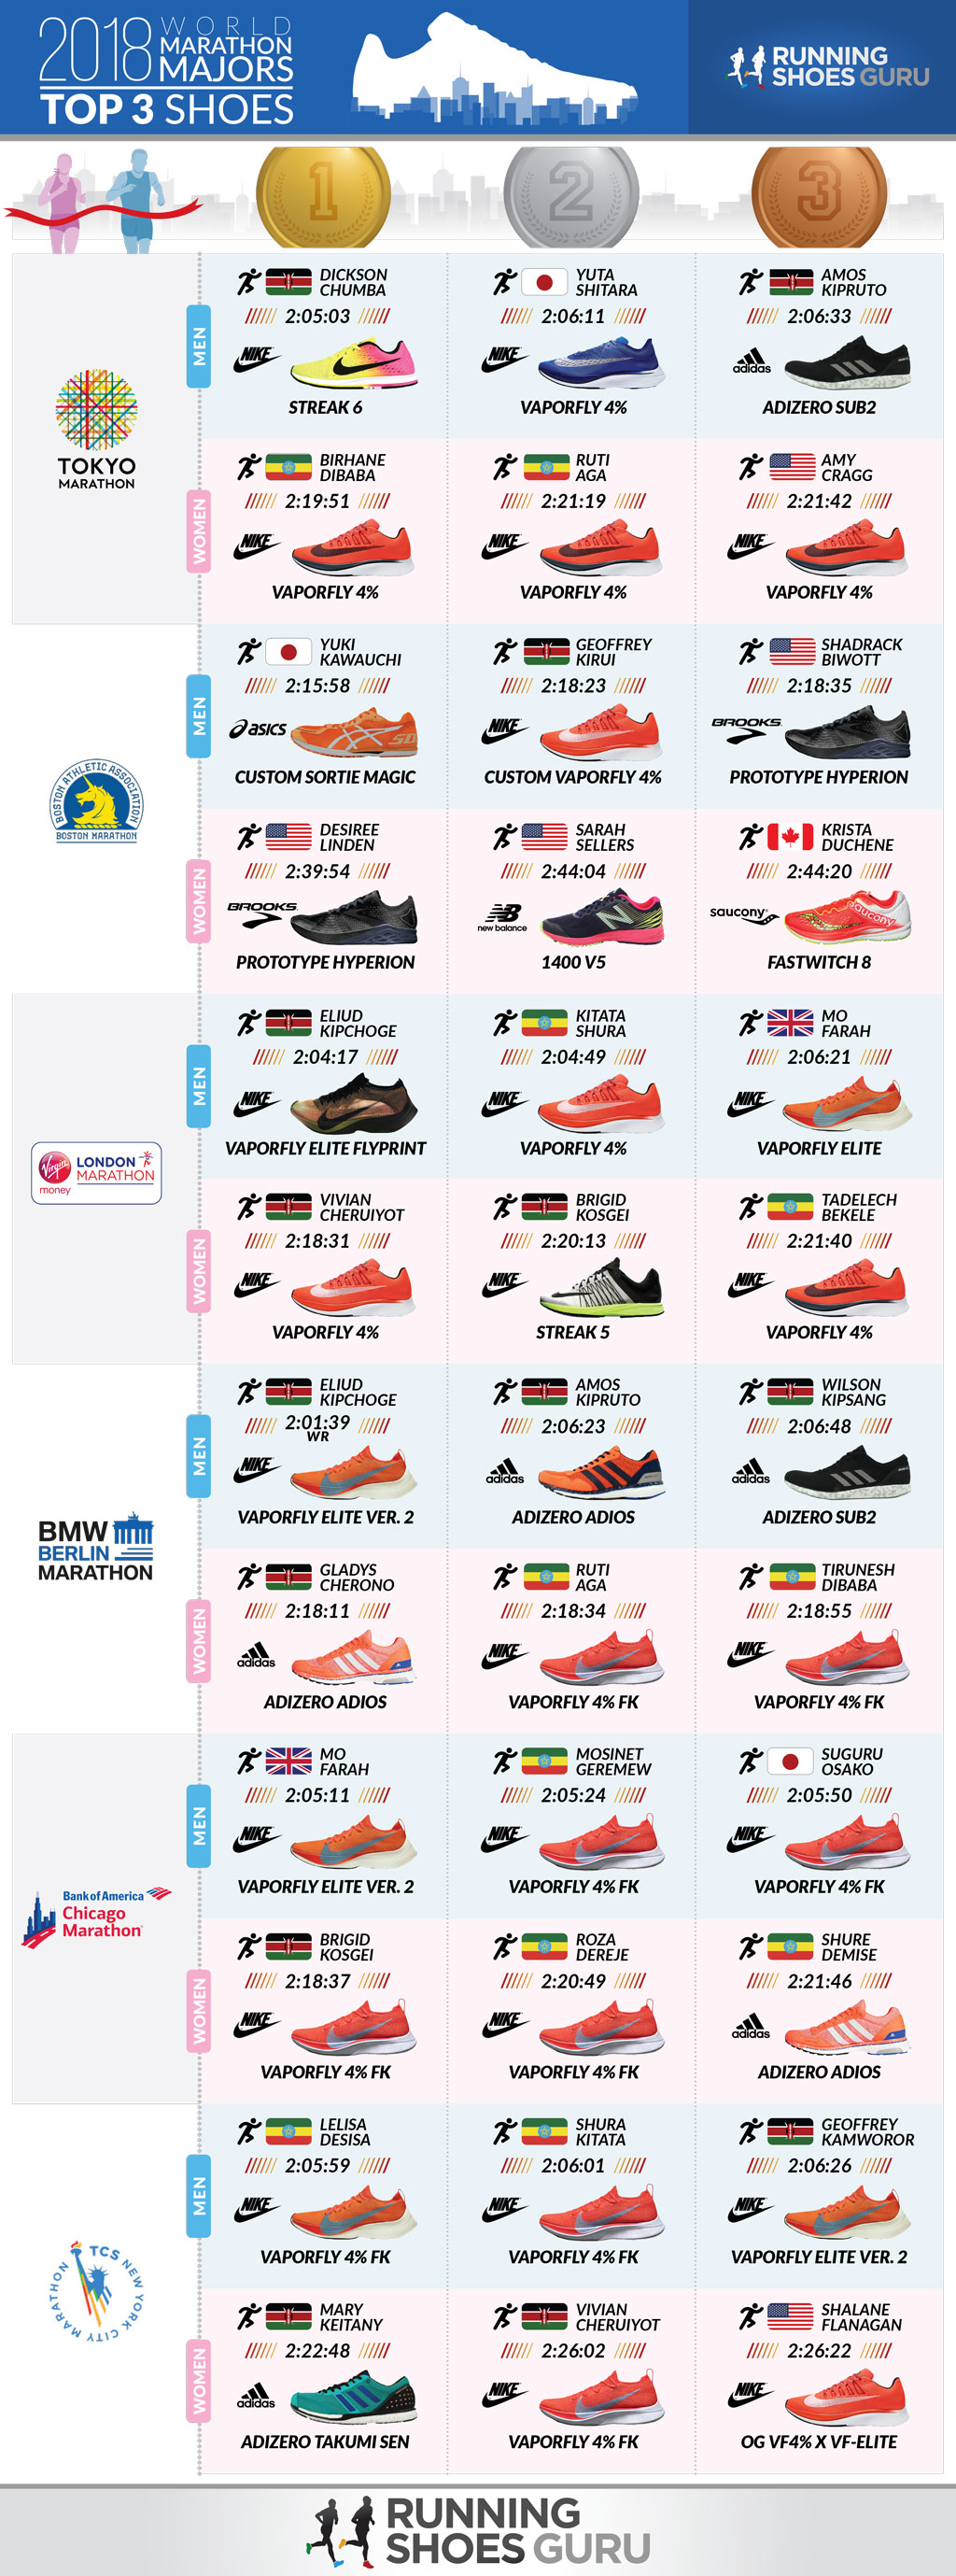 Shoes of the Winners of the 2018 World Marathon Majors (infographic)